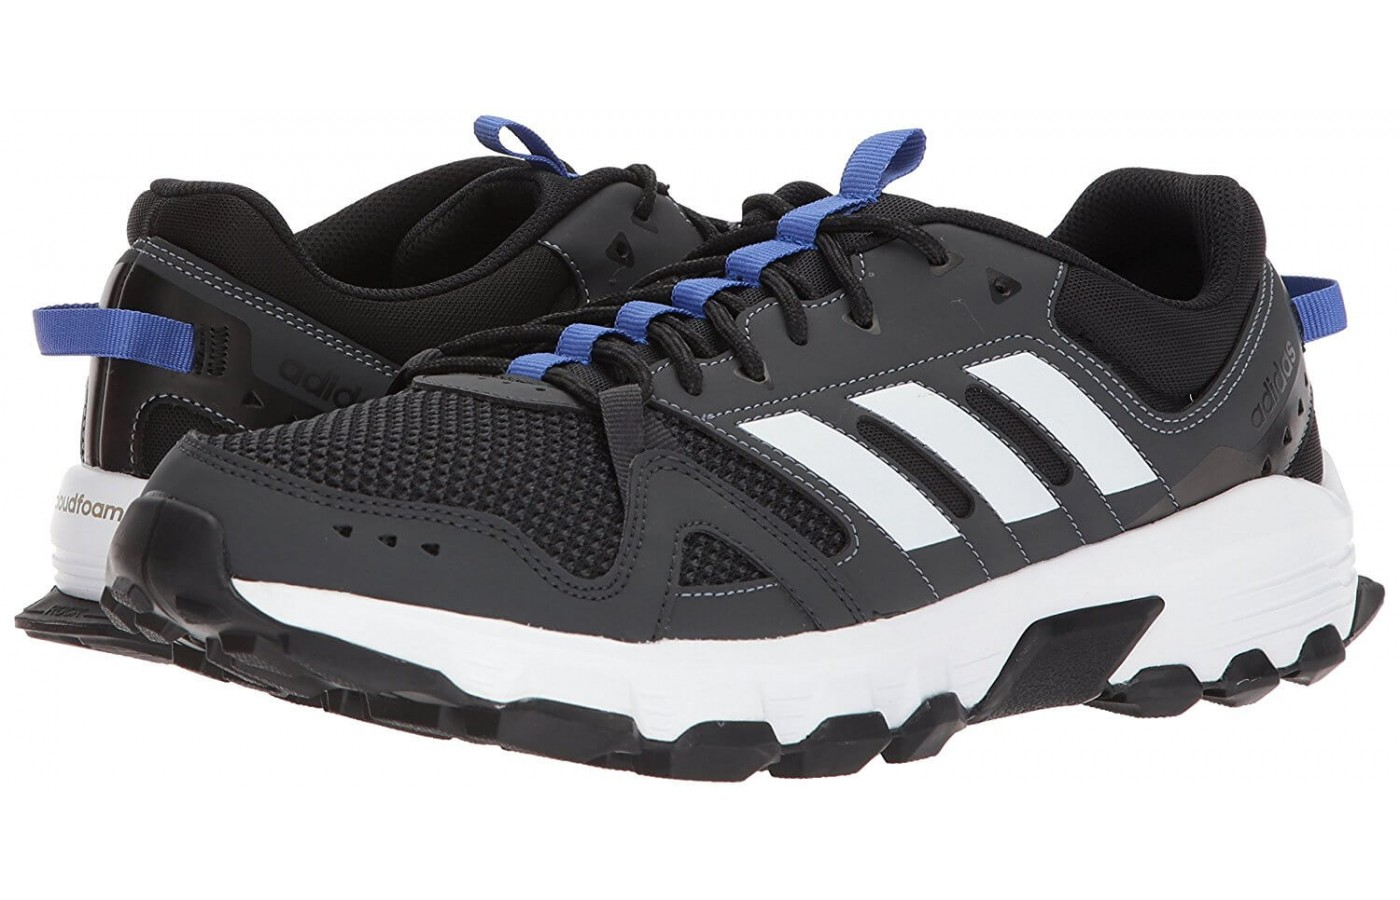 c58c81423 Adidas Rockadia Trail Review - Buy or Not in May 2019